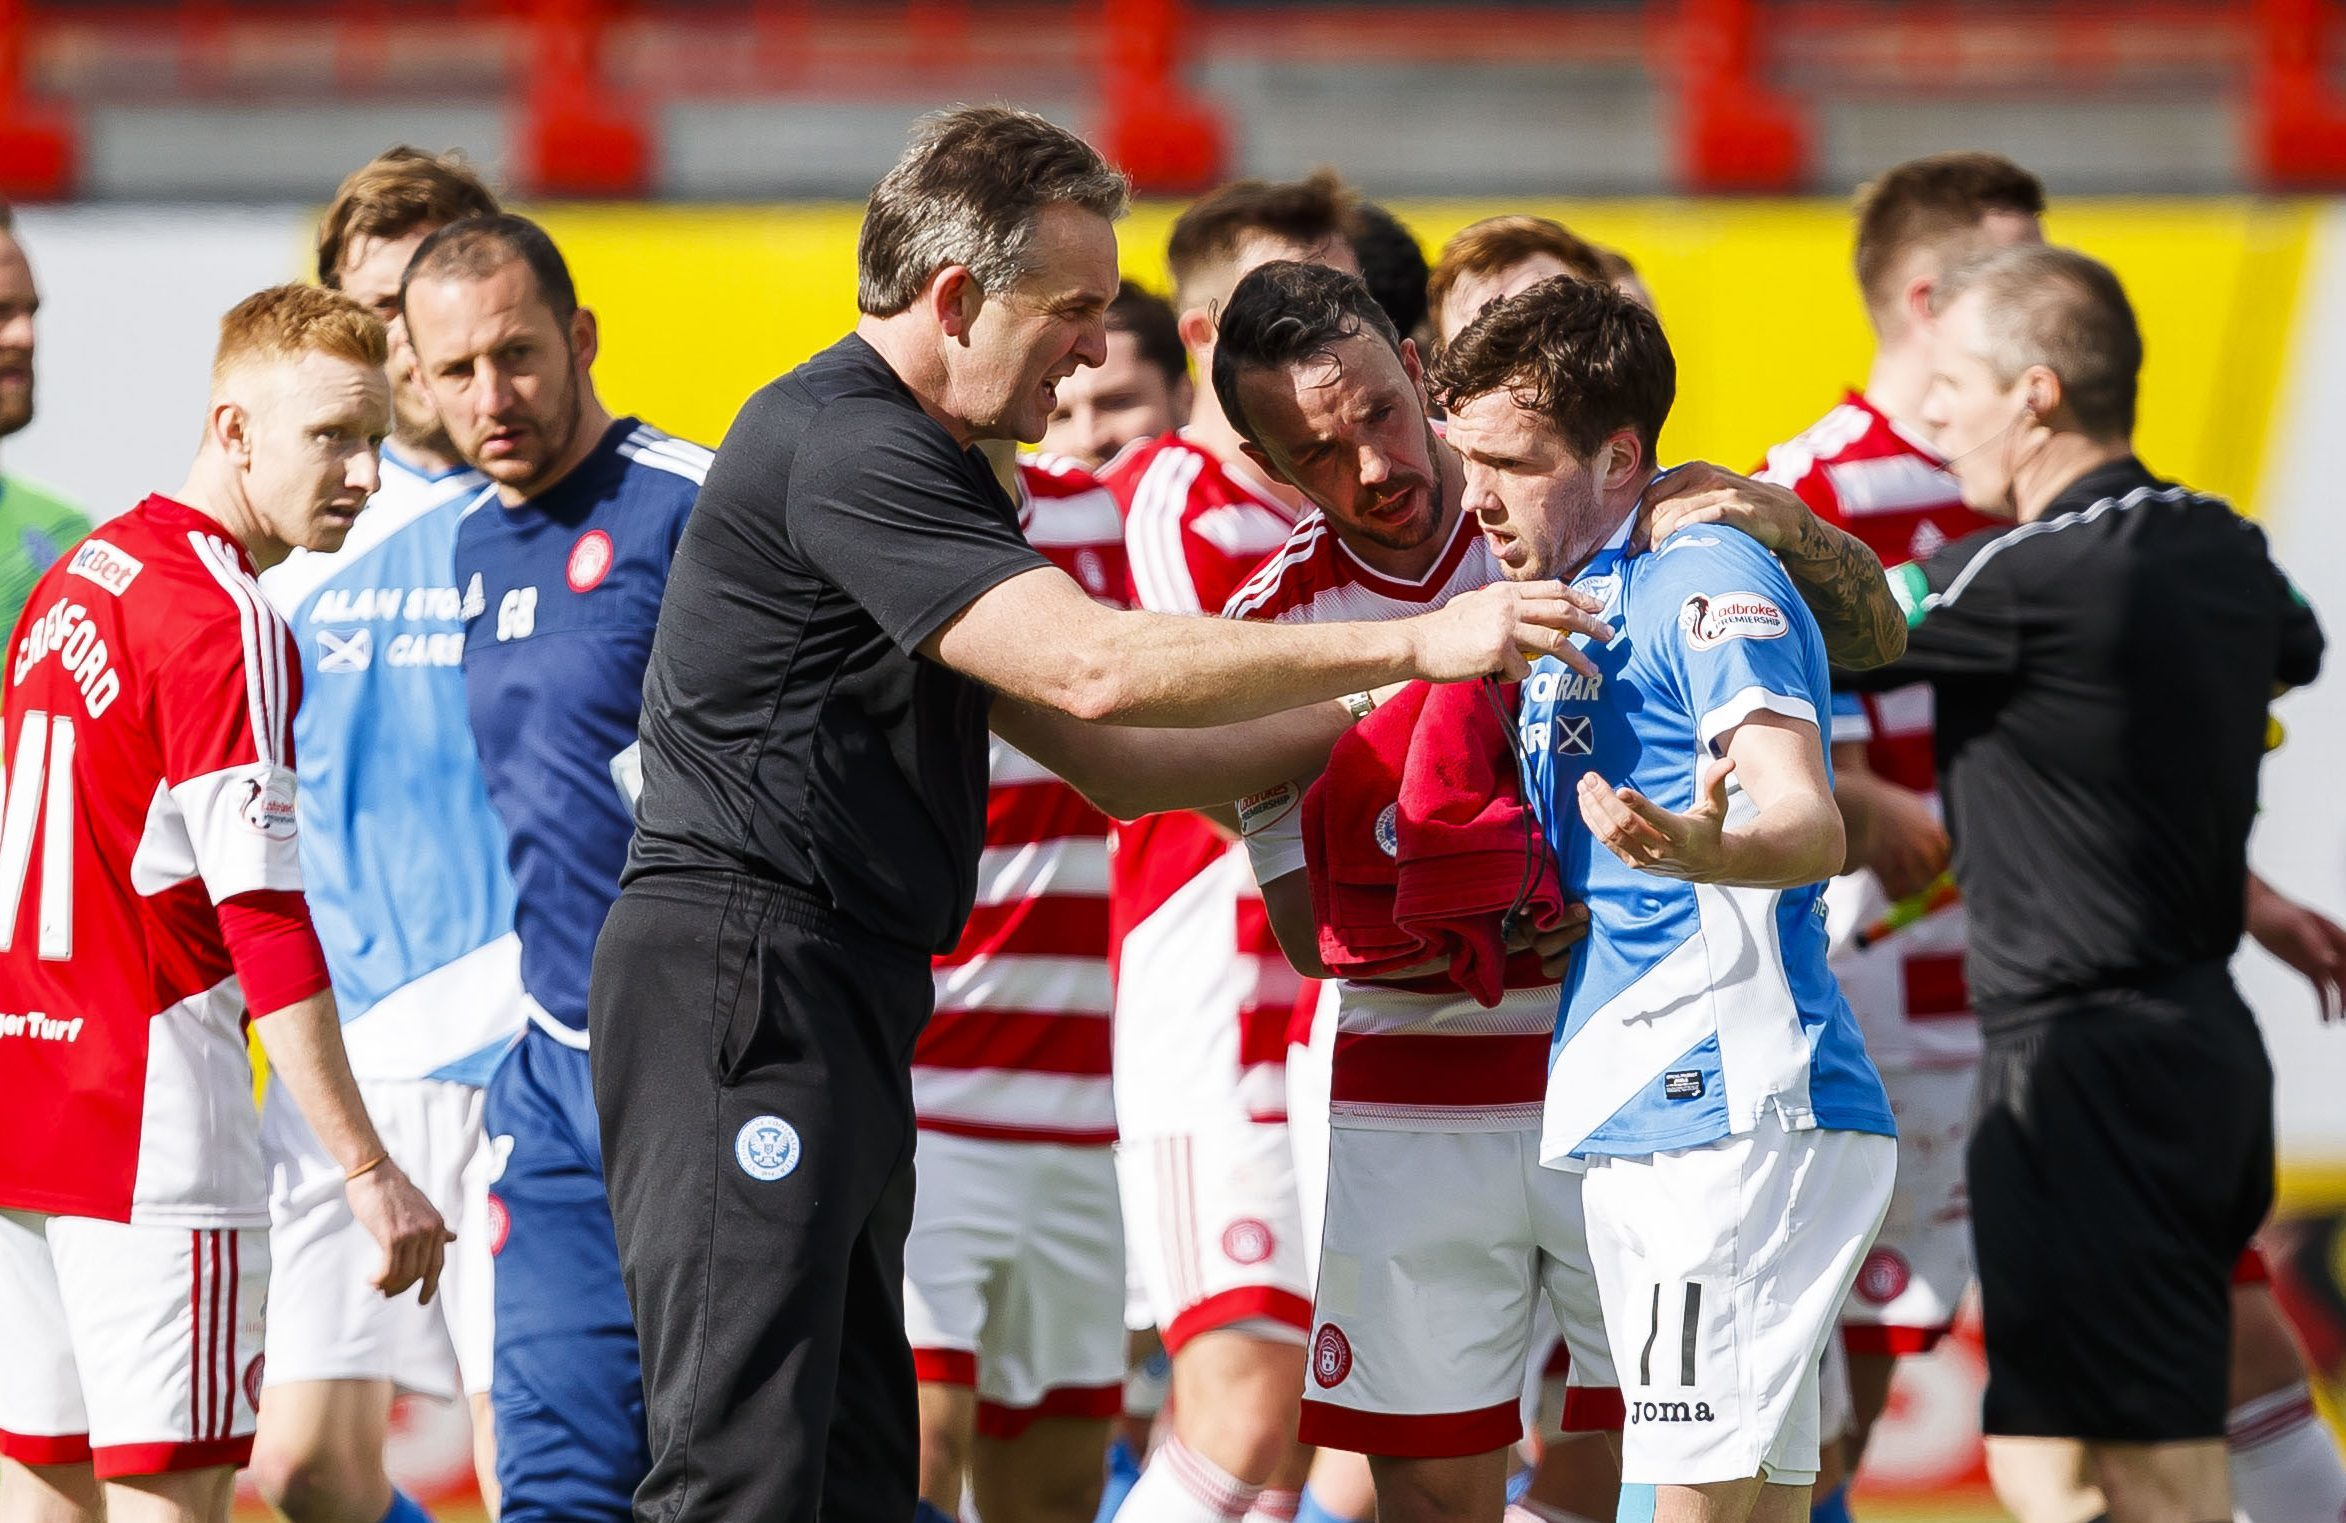 The half-time scene as Saints staff and Hamilton players attempt to calm Danny Swanson.